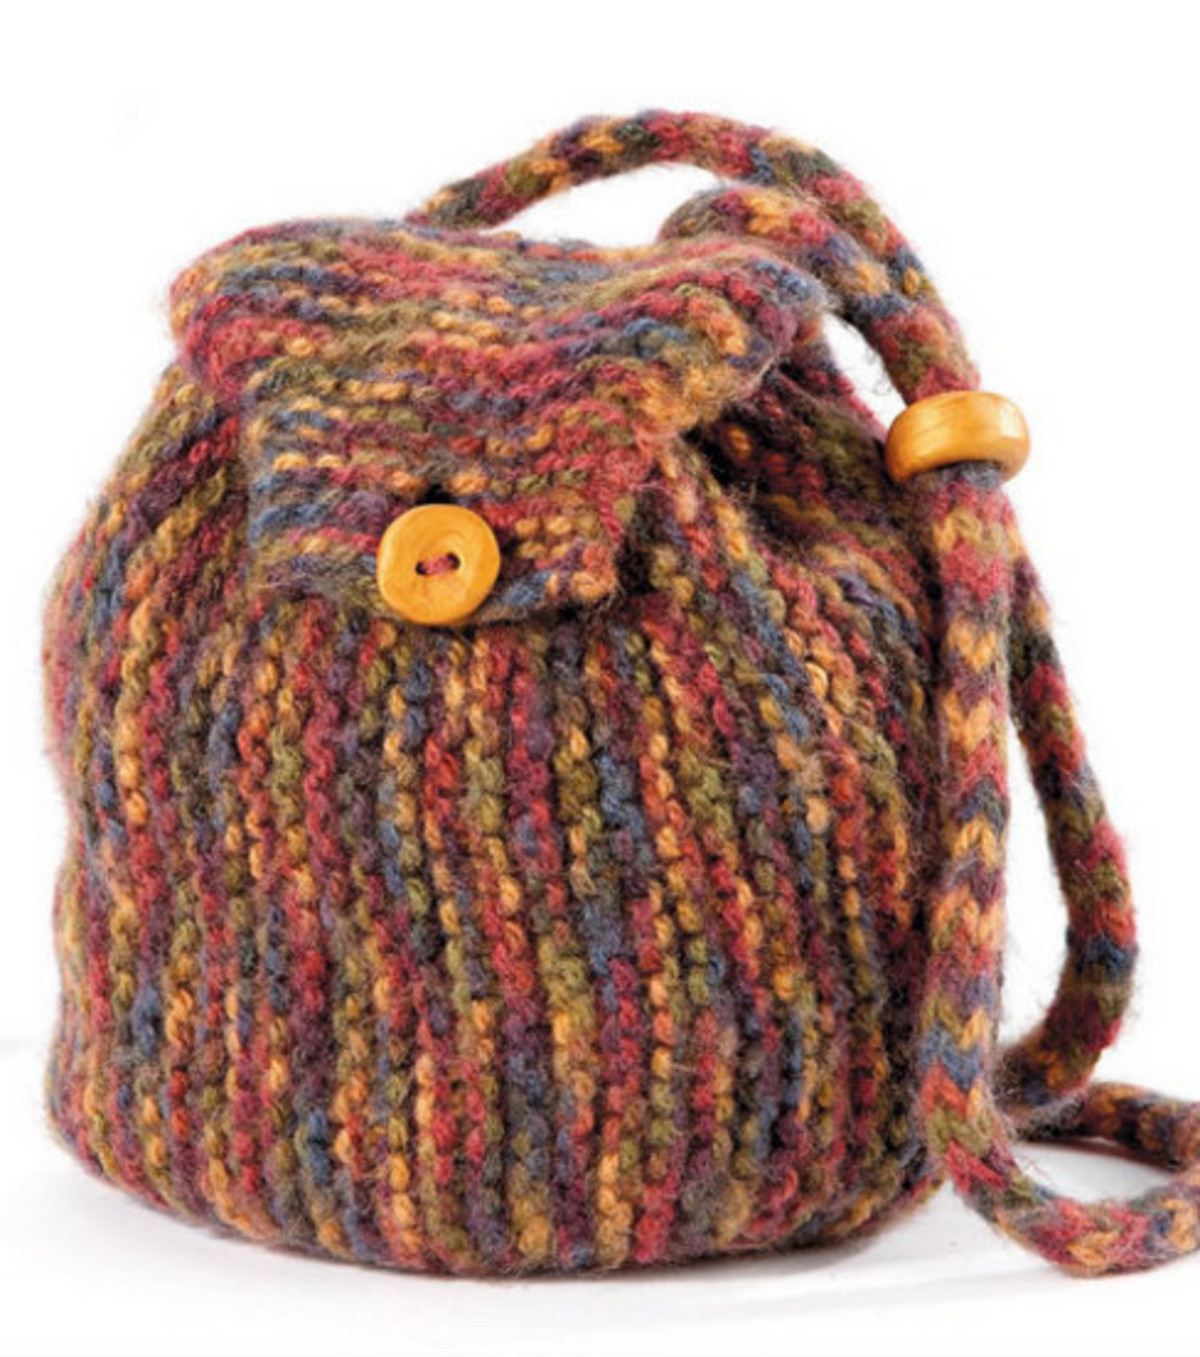 Crochet Draw String Bag Fresh Craftdrawer Crafts Make Your Own Back to School Backpacks Of Awesome 42 Pictures Crochet Draw String Bag